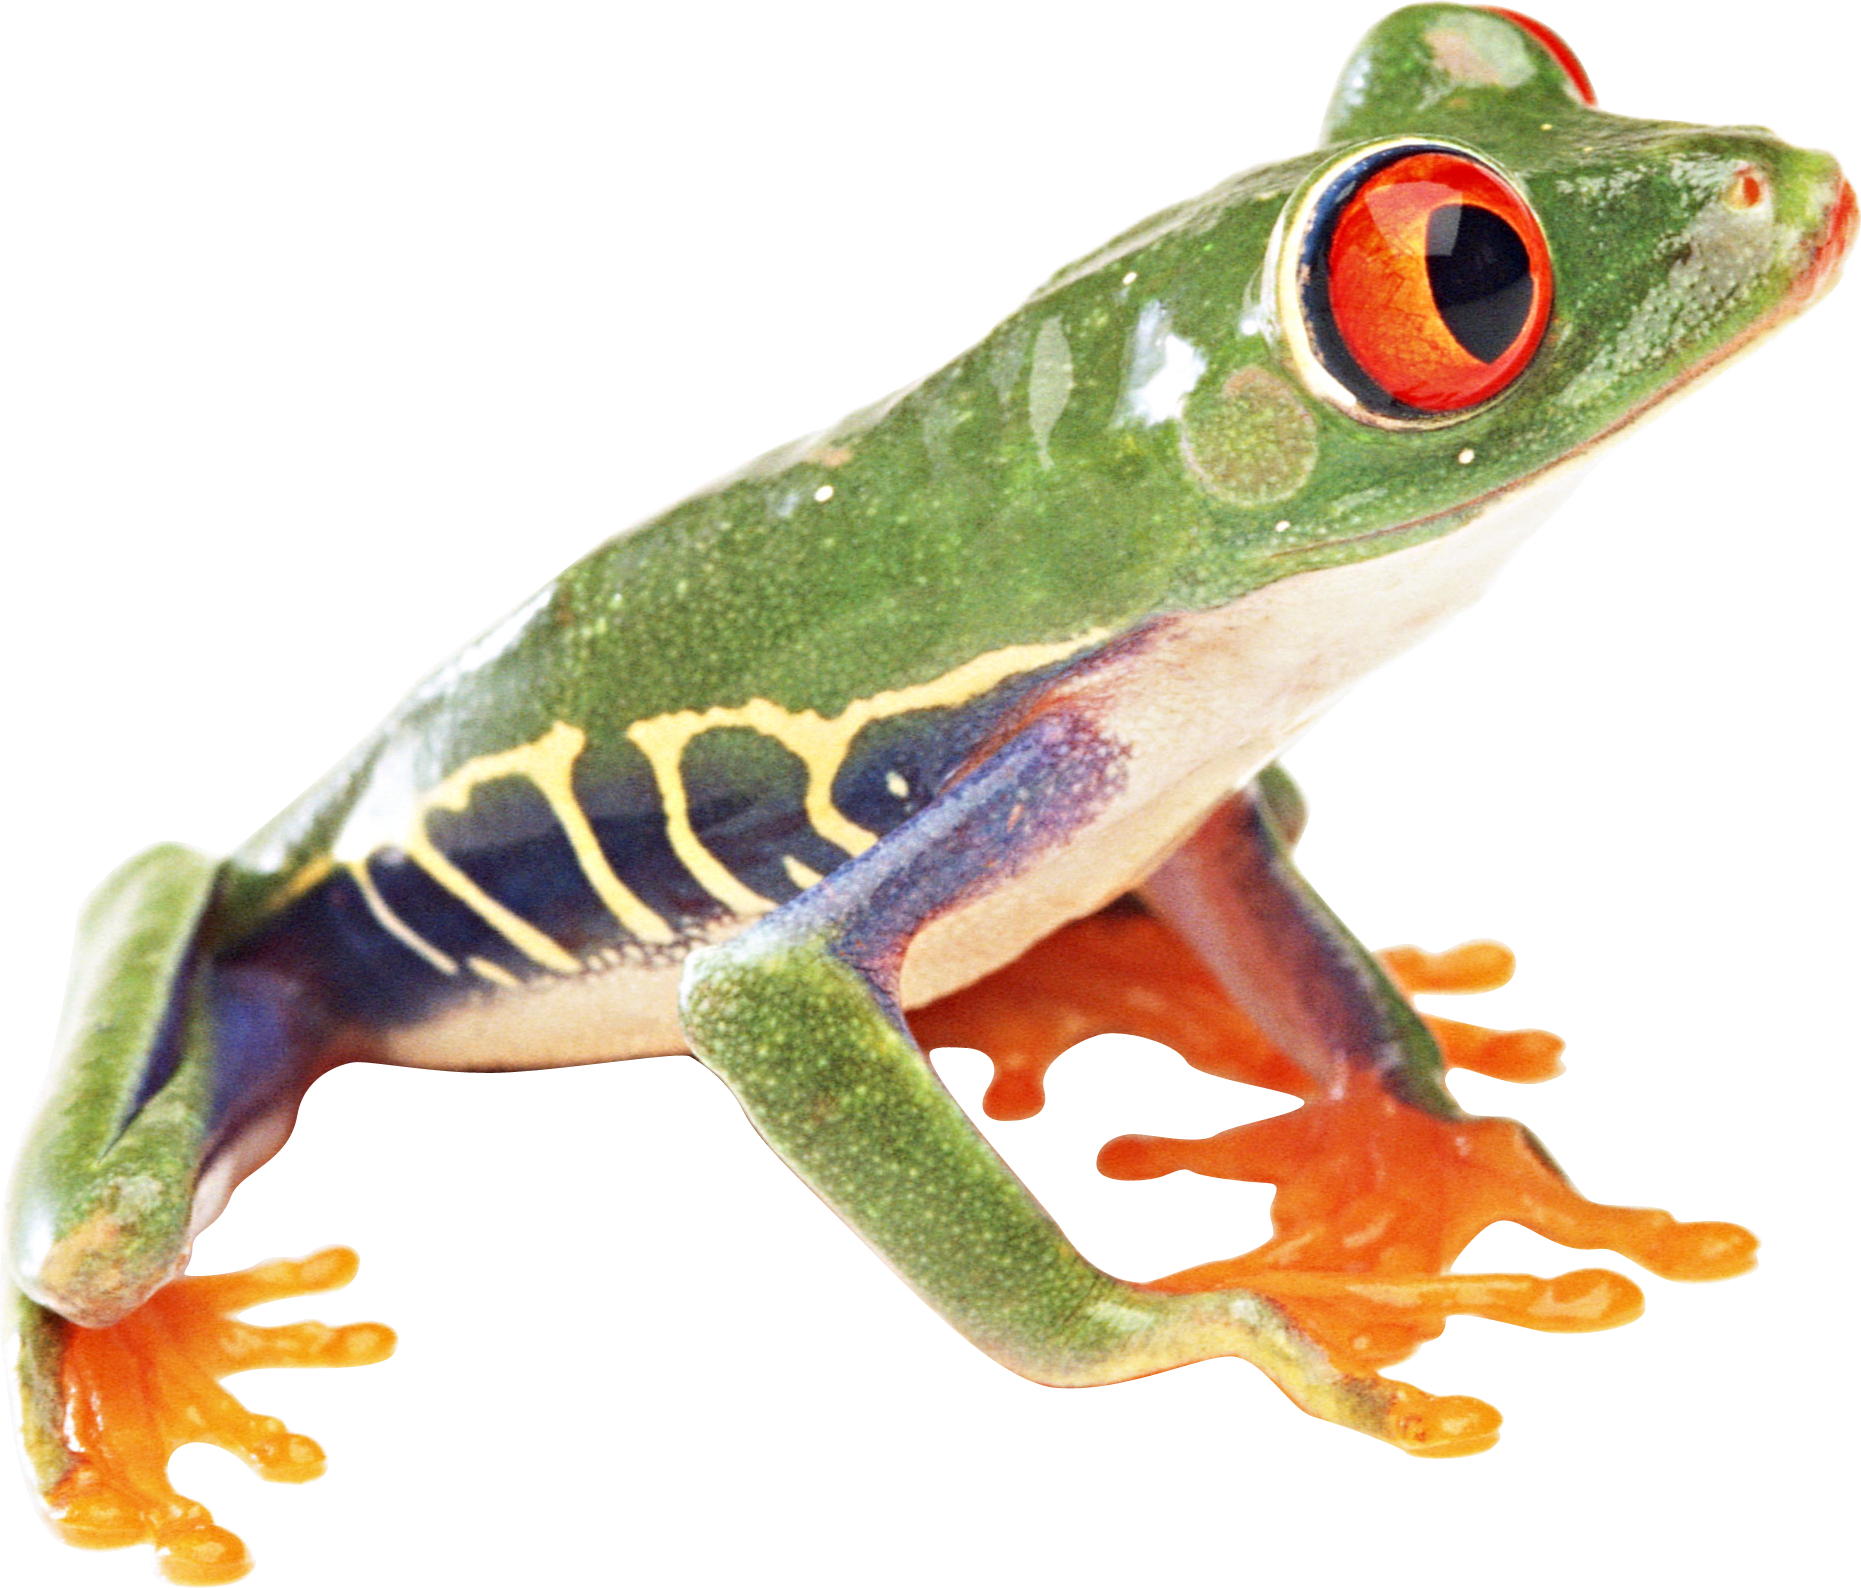 frog PNG image - PNG Frogs Free